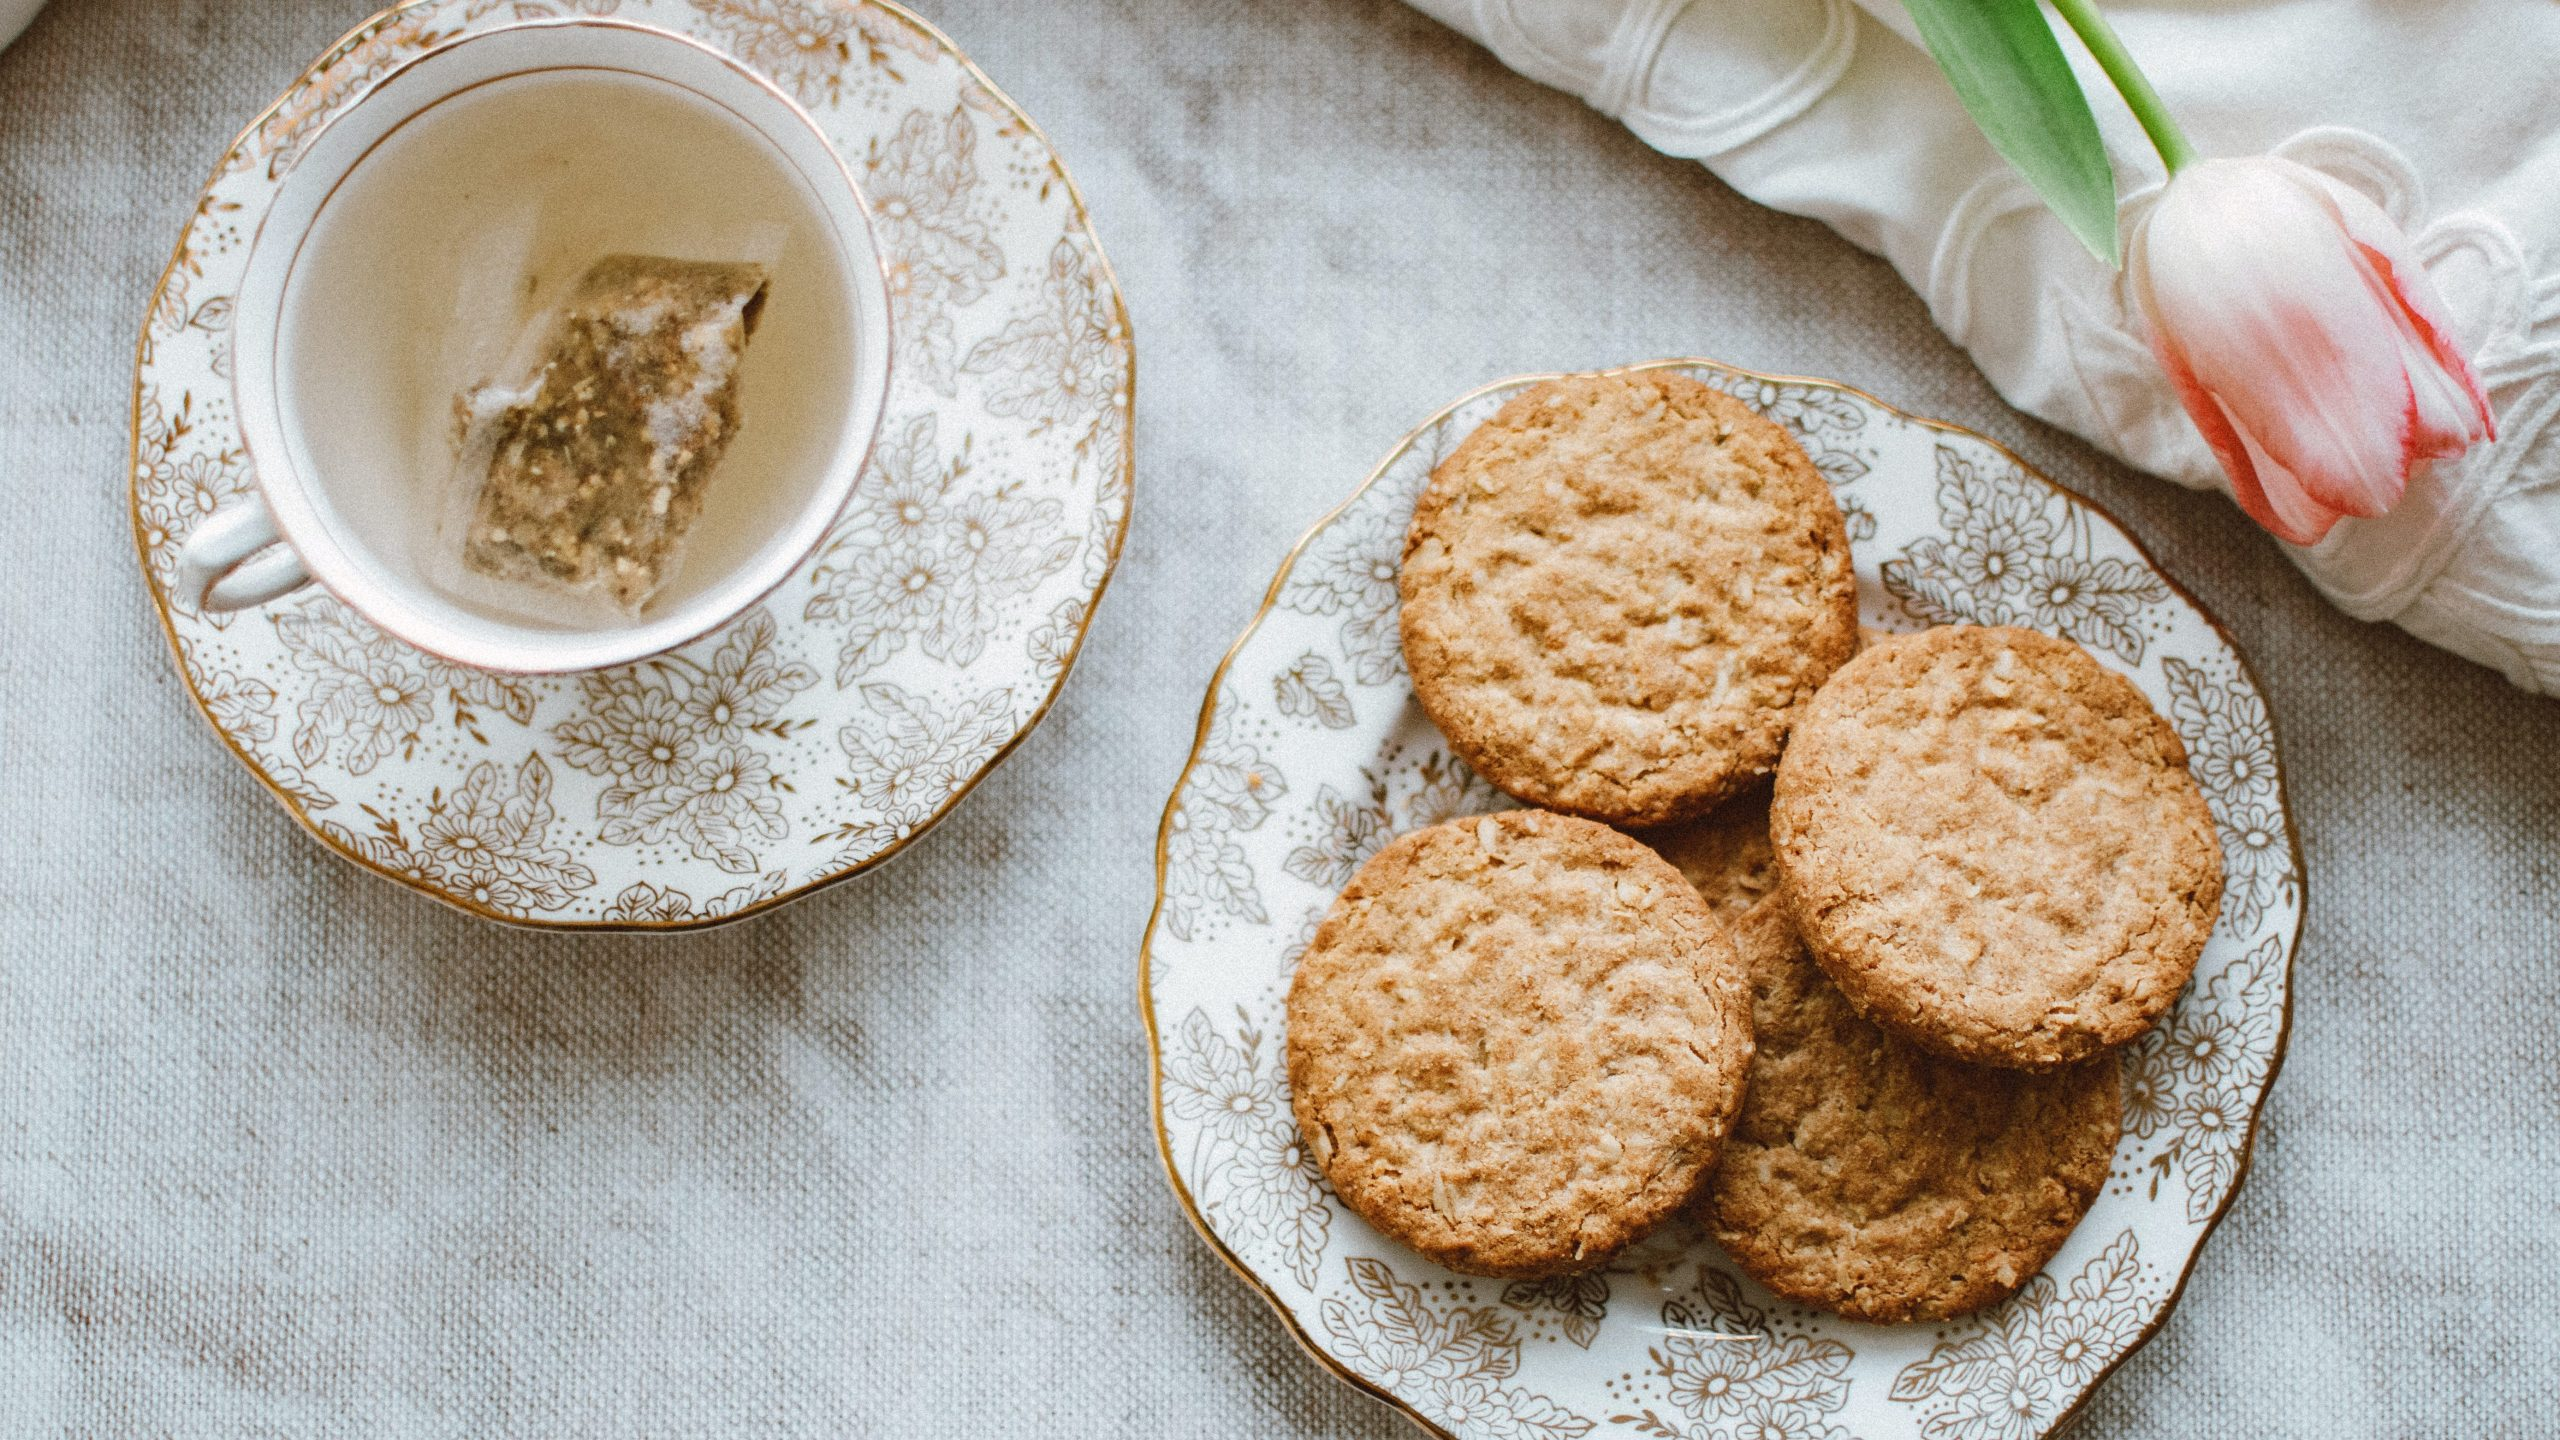 The image is of biscuits and a cup of tea. I have compared the price of rich tea biscuits from different supermarkets.